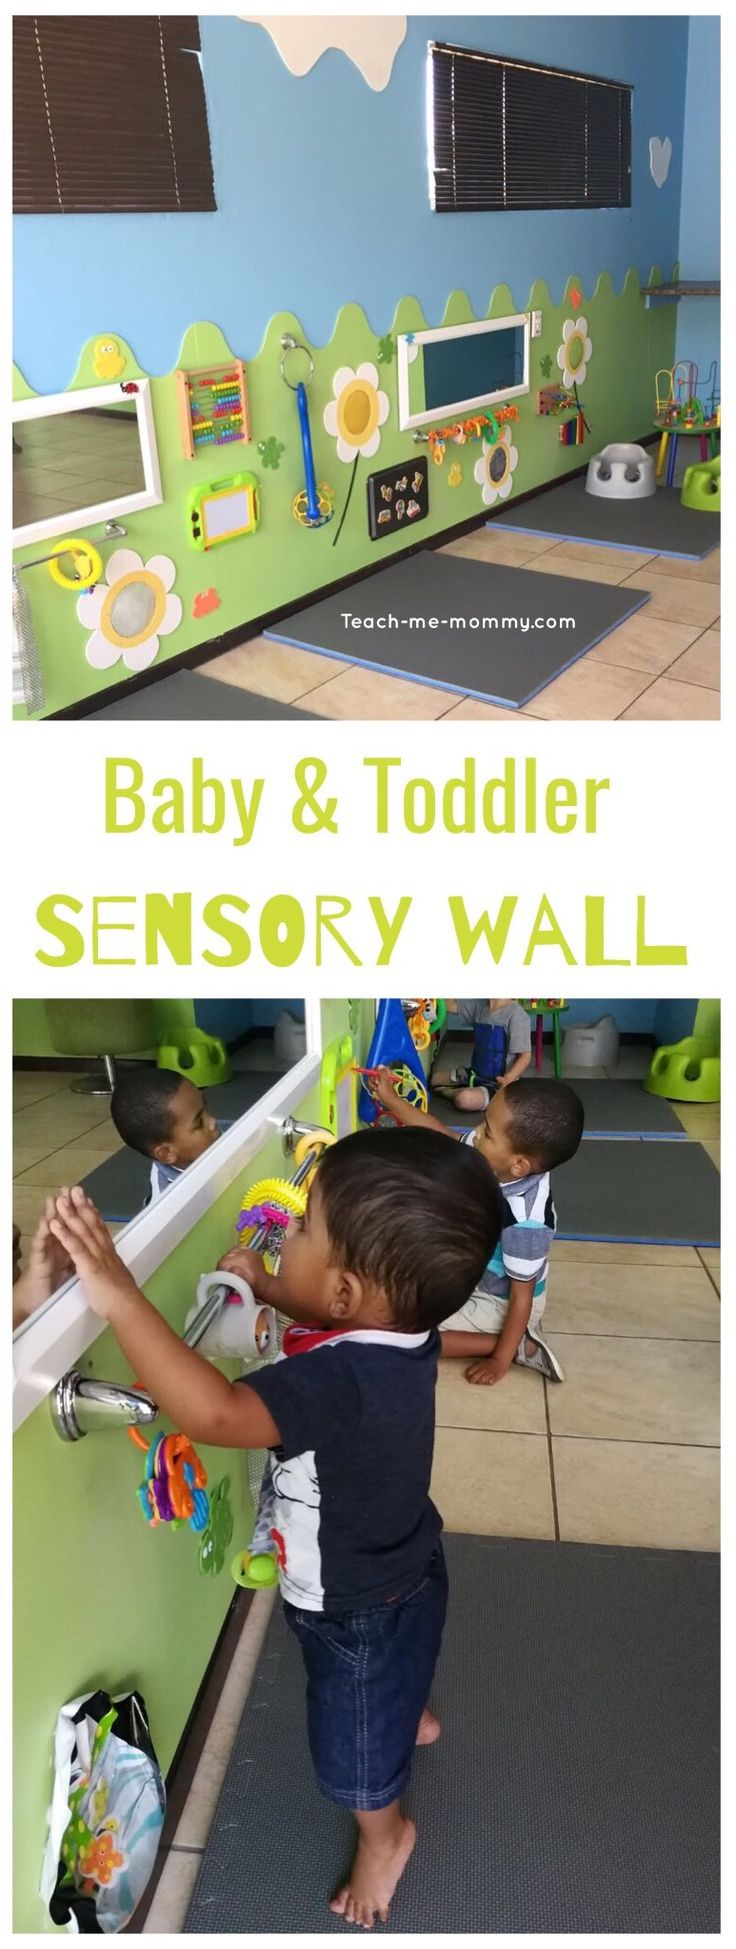 A fantastic sensory and activity wall for babies & toddlers! via @http://pinterest.com/teachmemommy